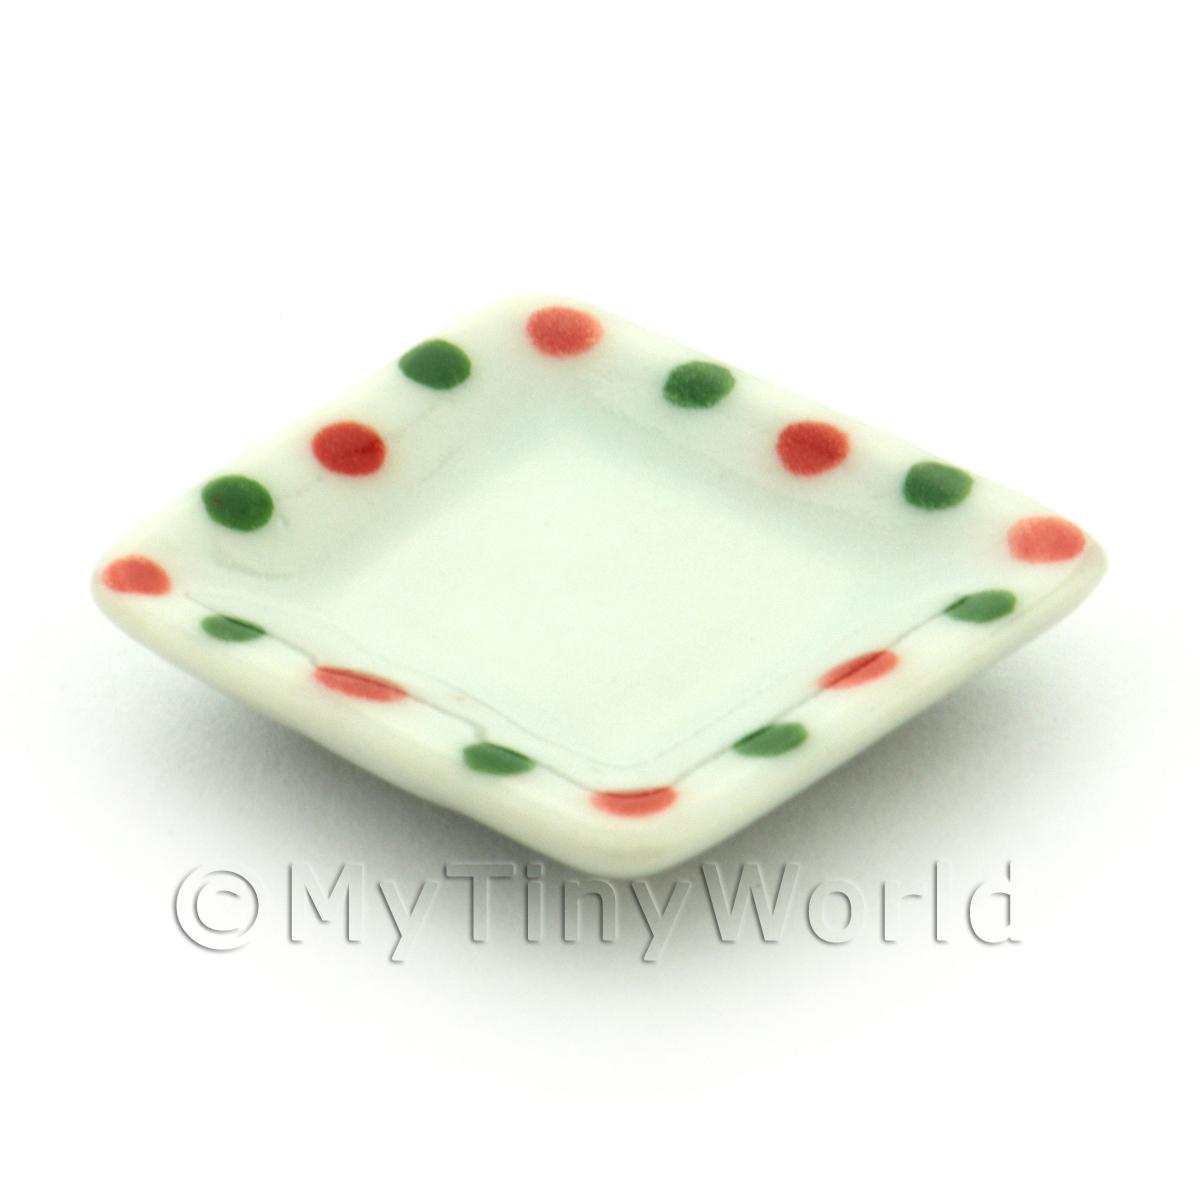 Dolls House Miniature Dotty Design Ceramic 21mm Square Plate